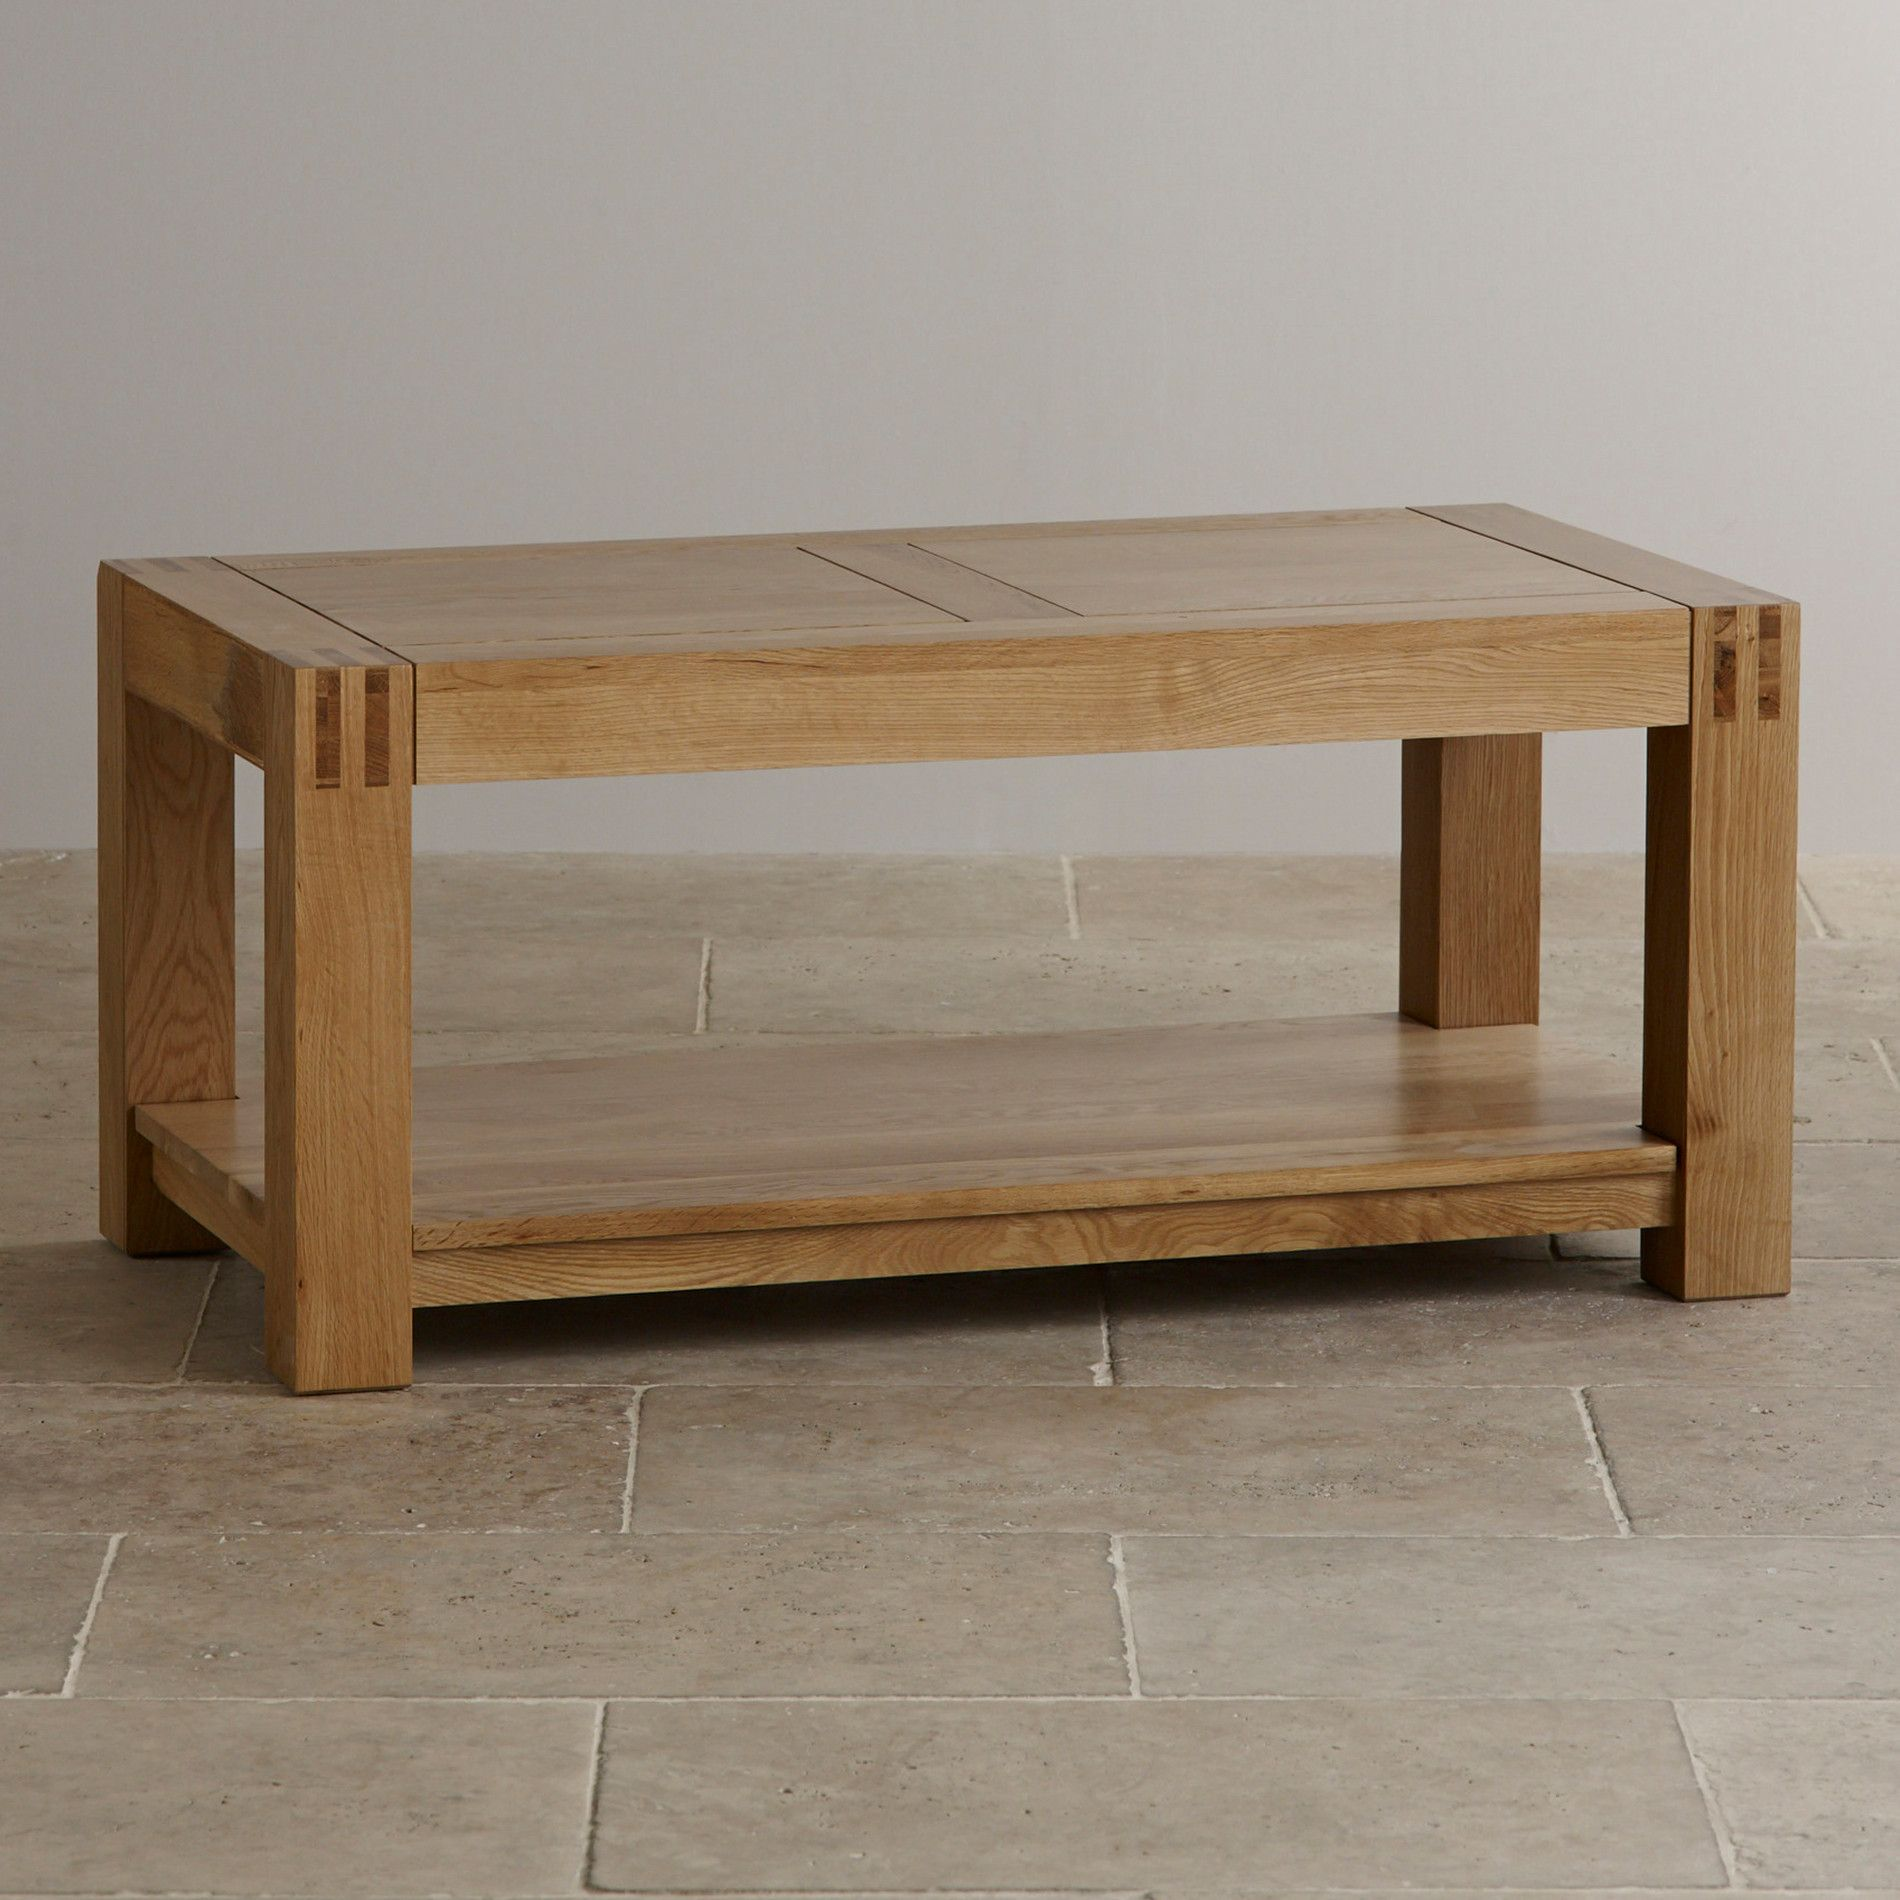 box joint coffee table Google Search Coffee table